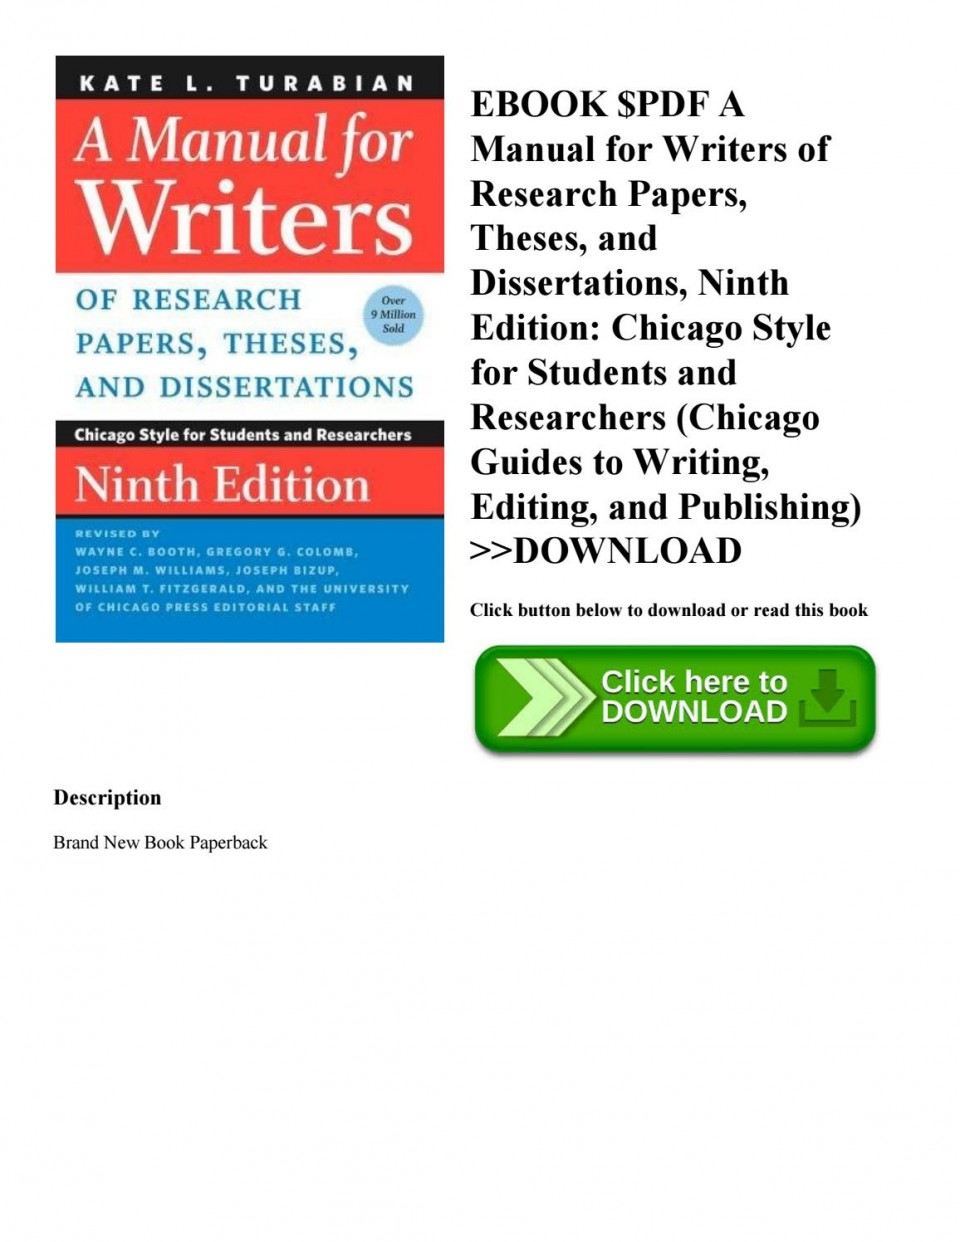 017 Manual For Writers Of Research Papers Theses And Dissertations Ebook Paper Page 1 Unbelievable A 960